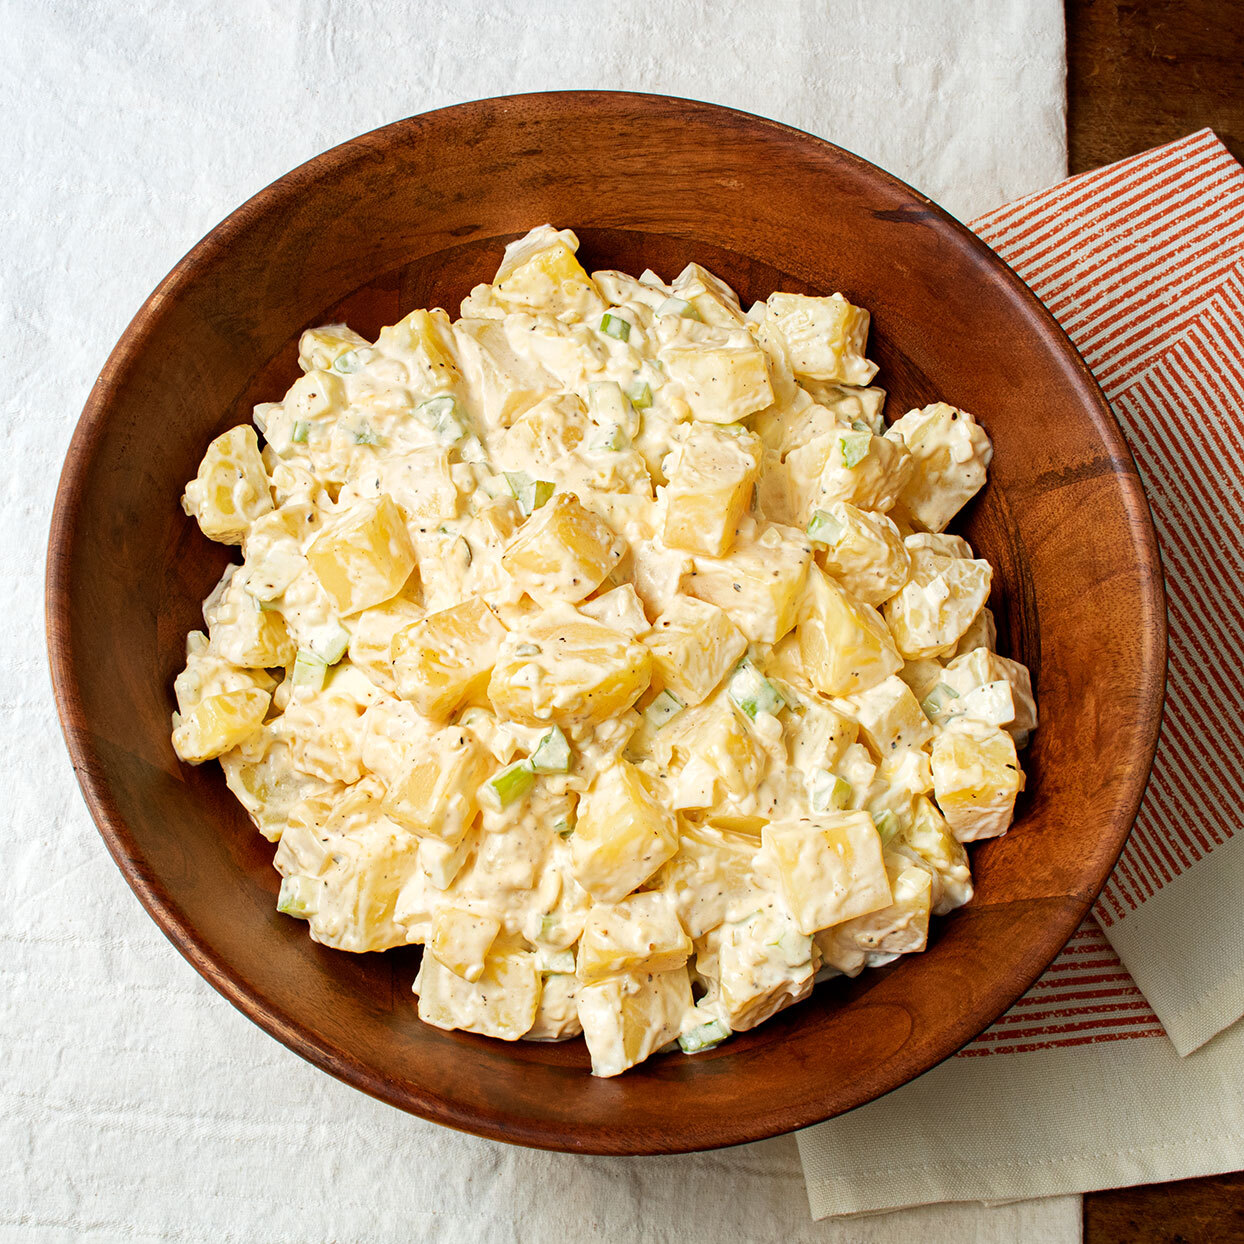 Jessica's Potato Salad